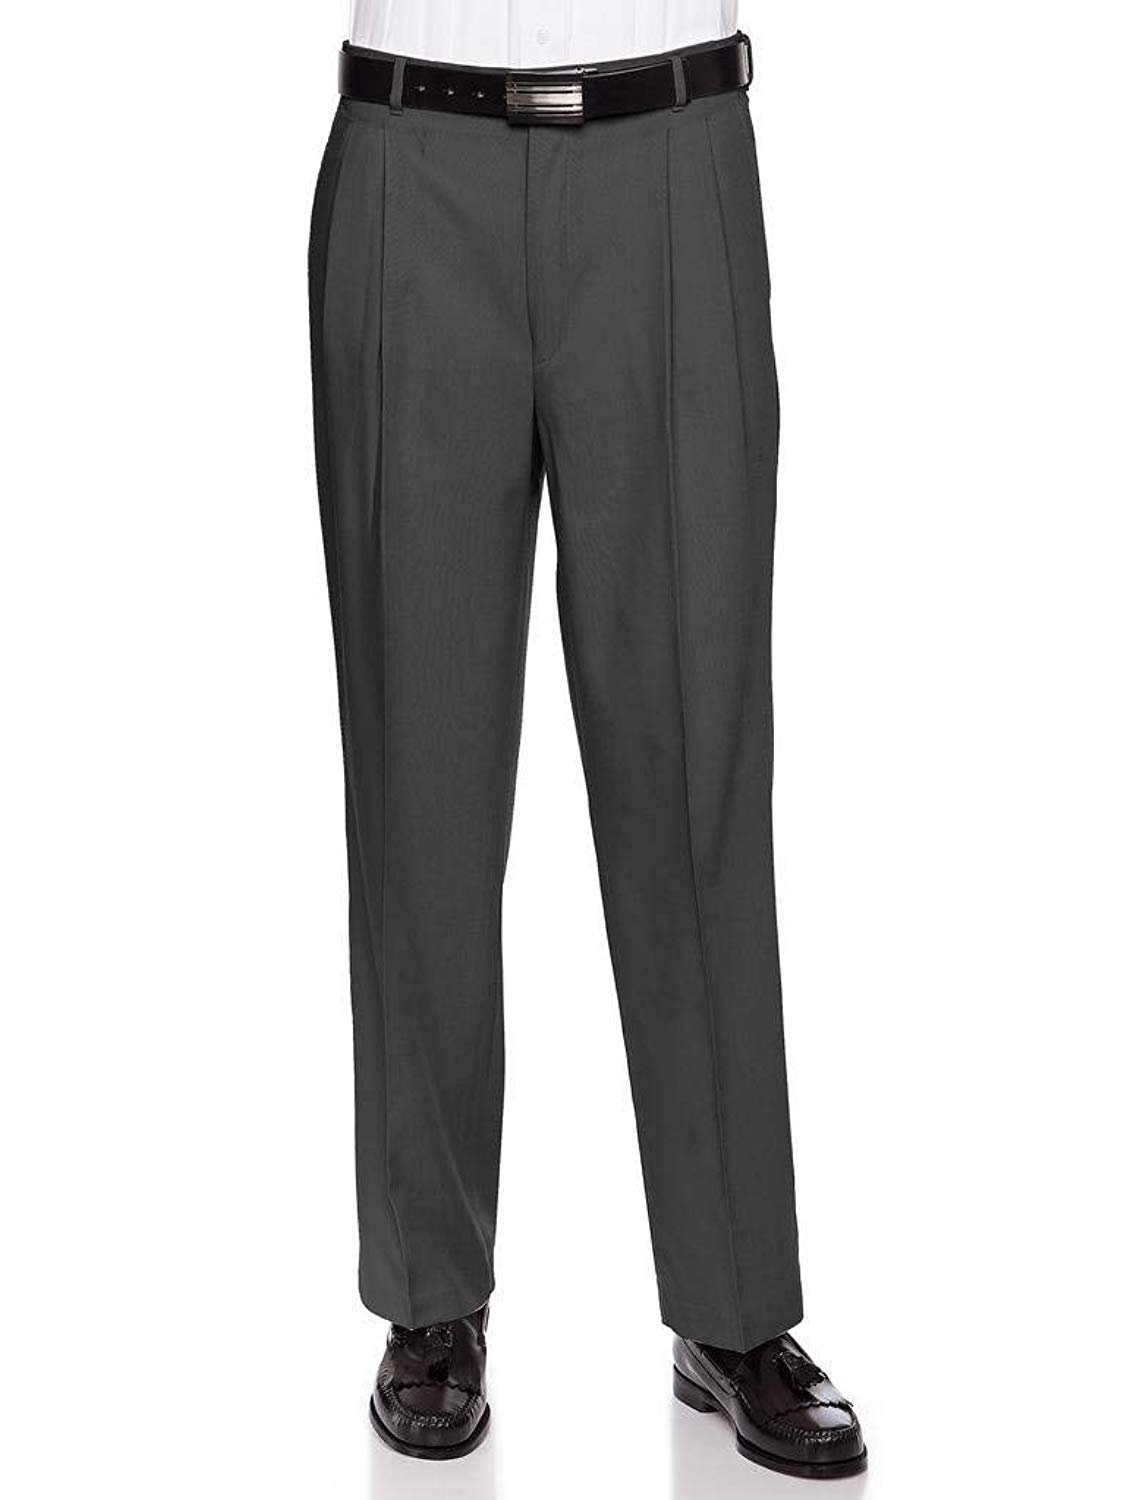 Mens Flat Front Poly Wool Dress Pant By RGM